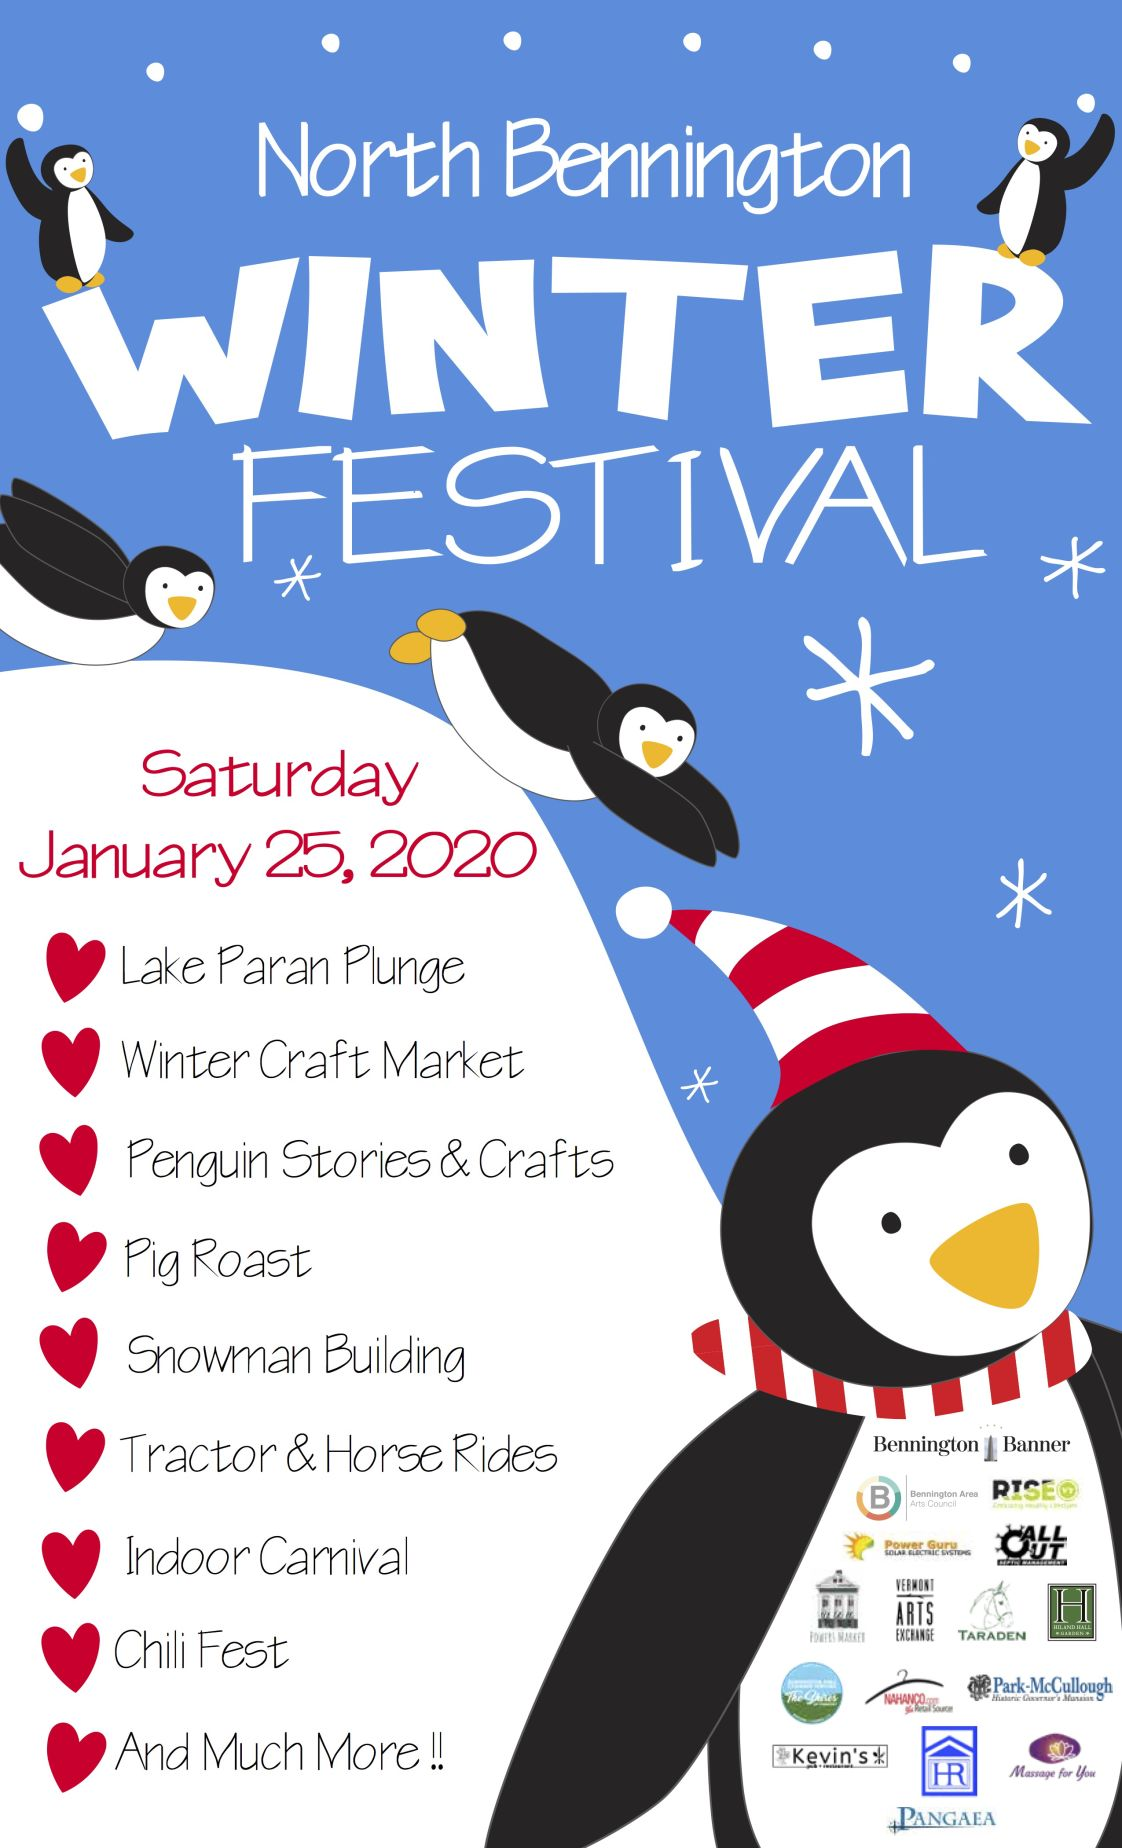 North Bennington Winter Festival